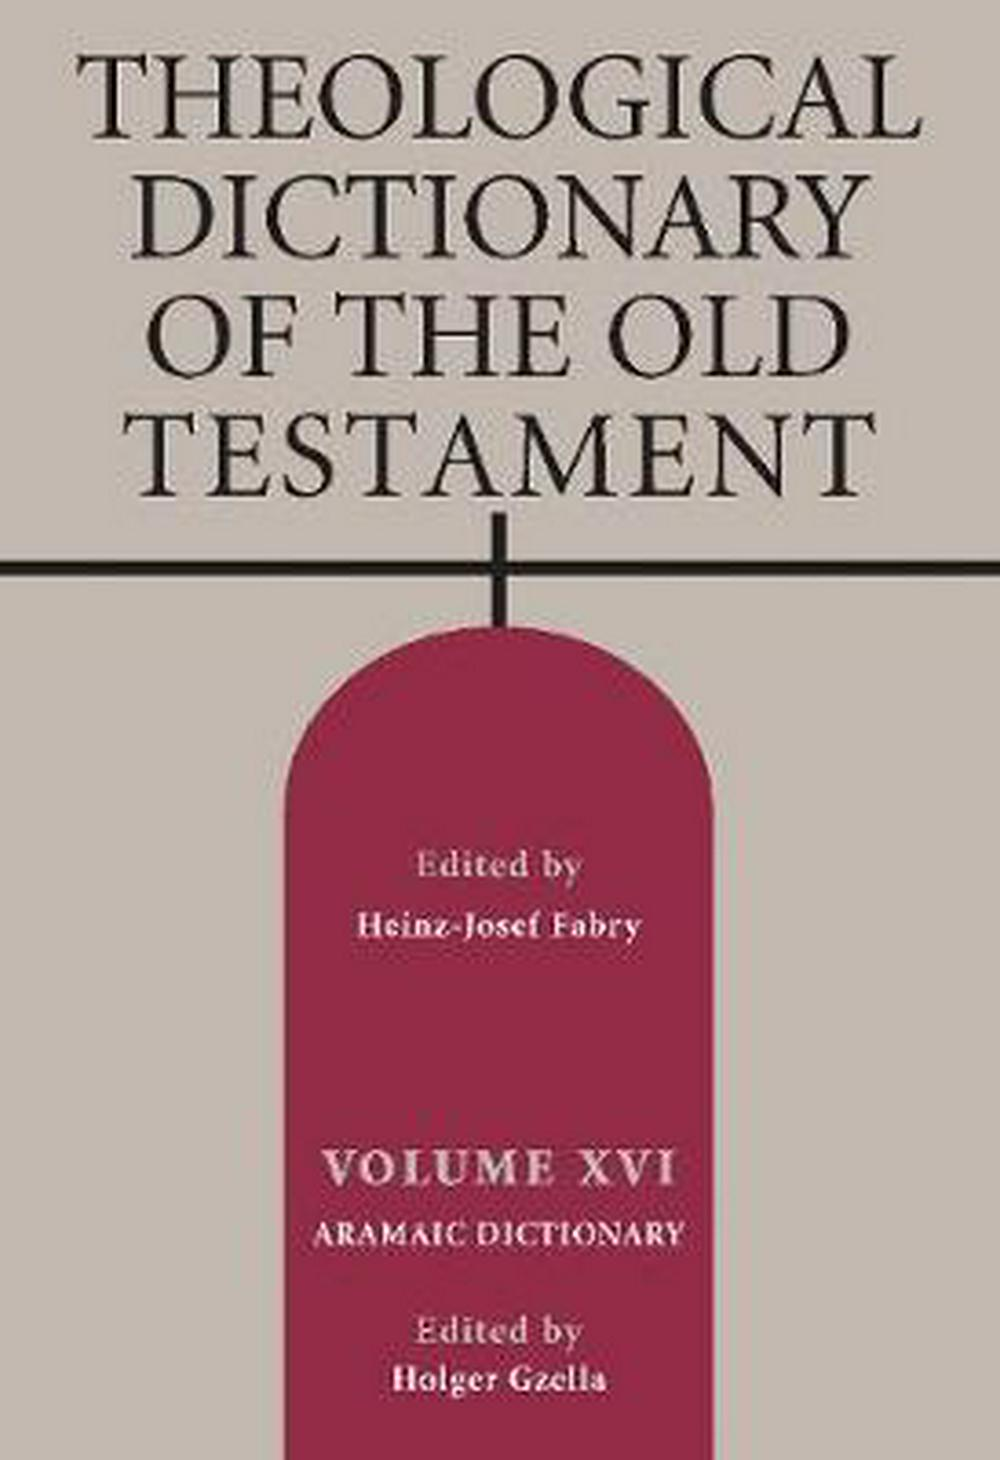 16: Theological Dictionary of the Old Testament, Volume XVI